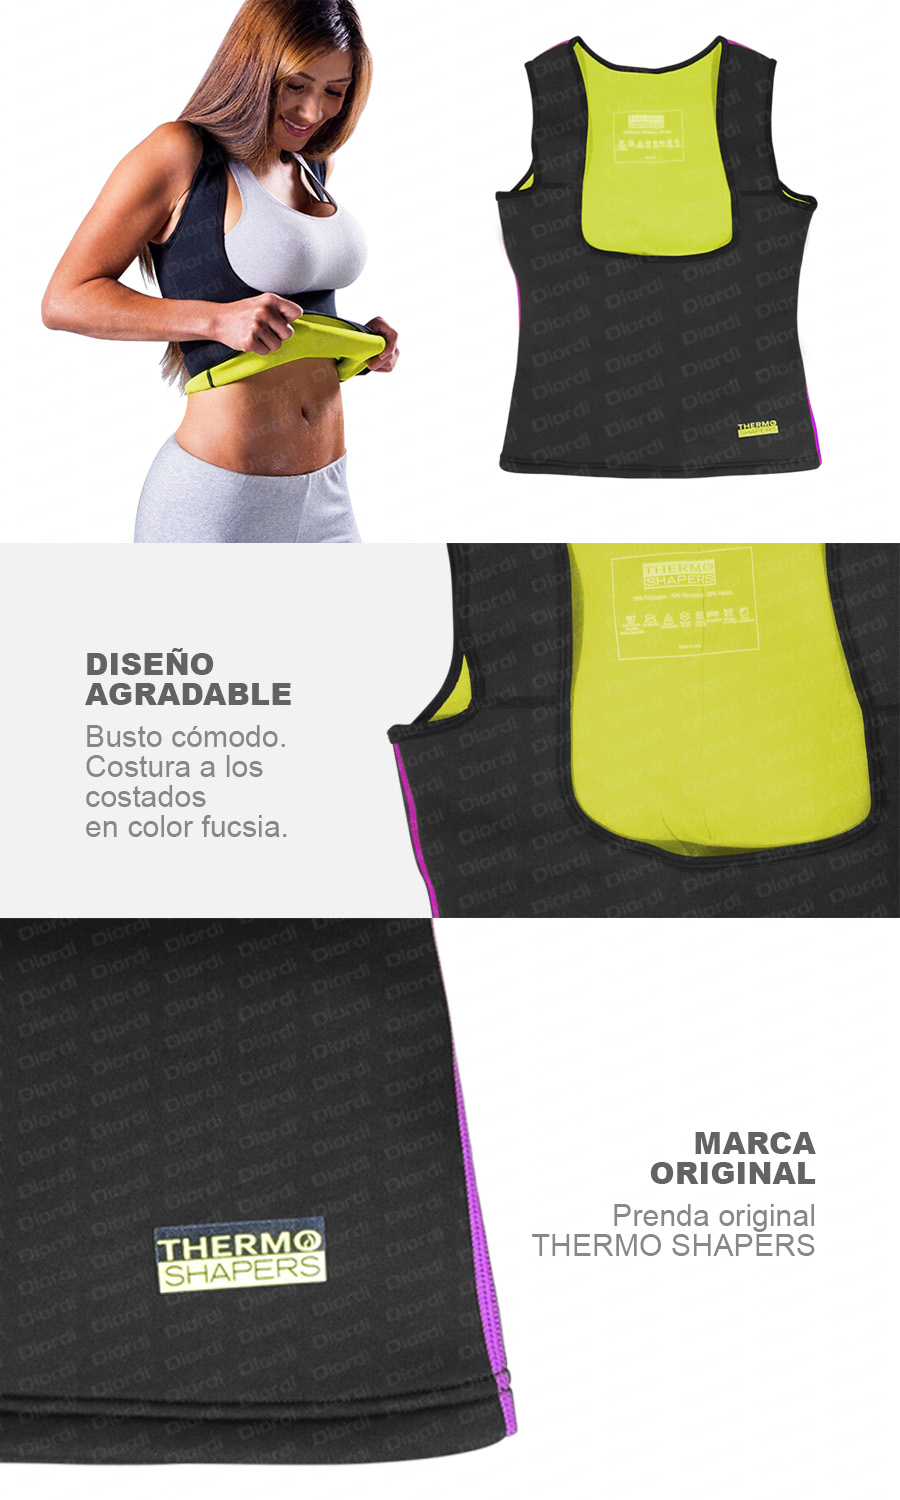 Detalles Bividí Thermo Shapers Mujer